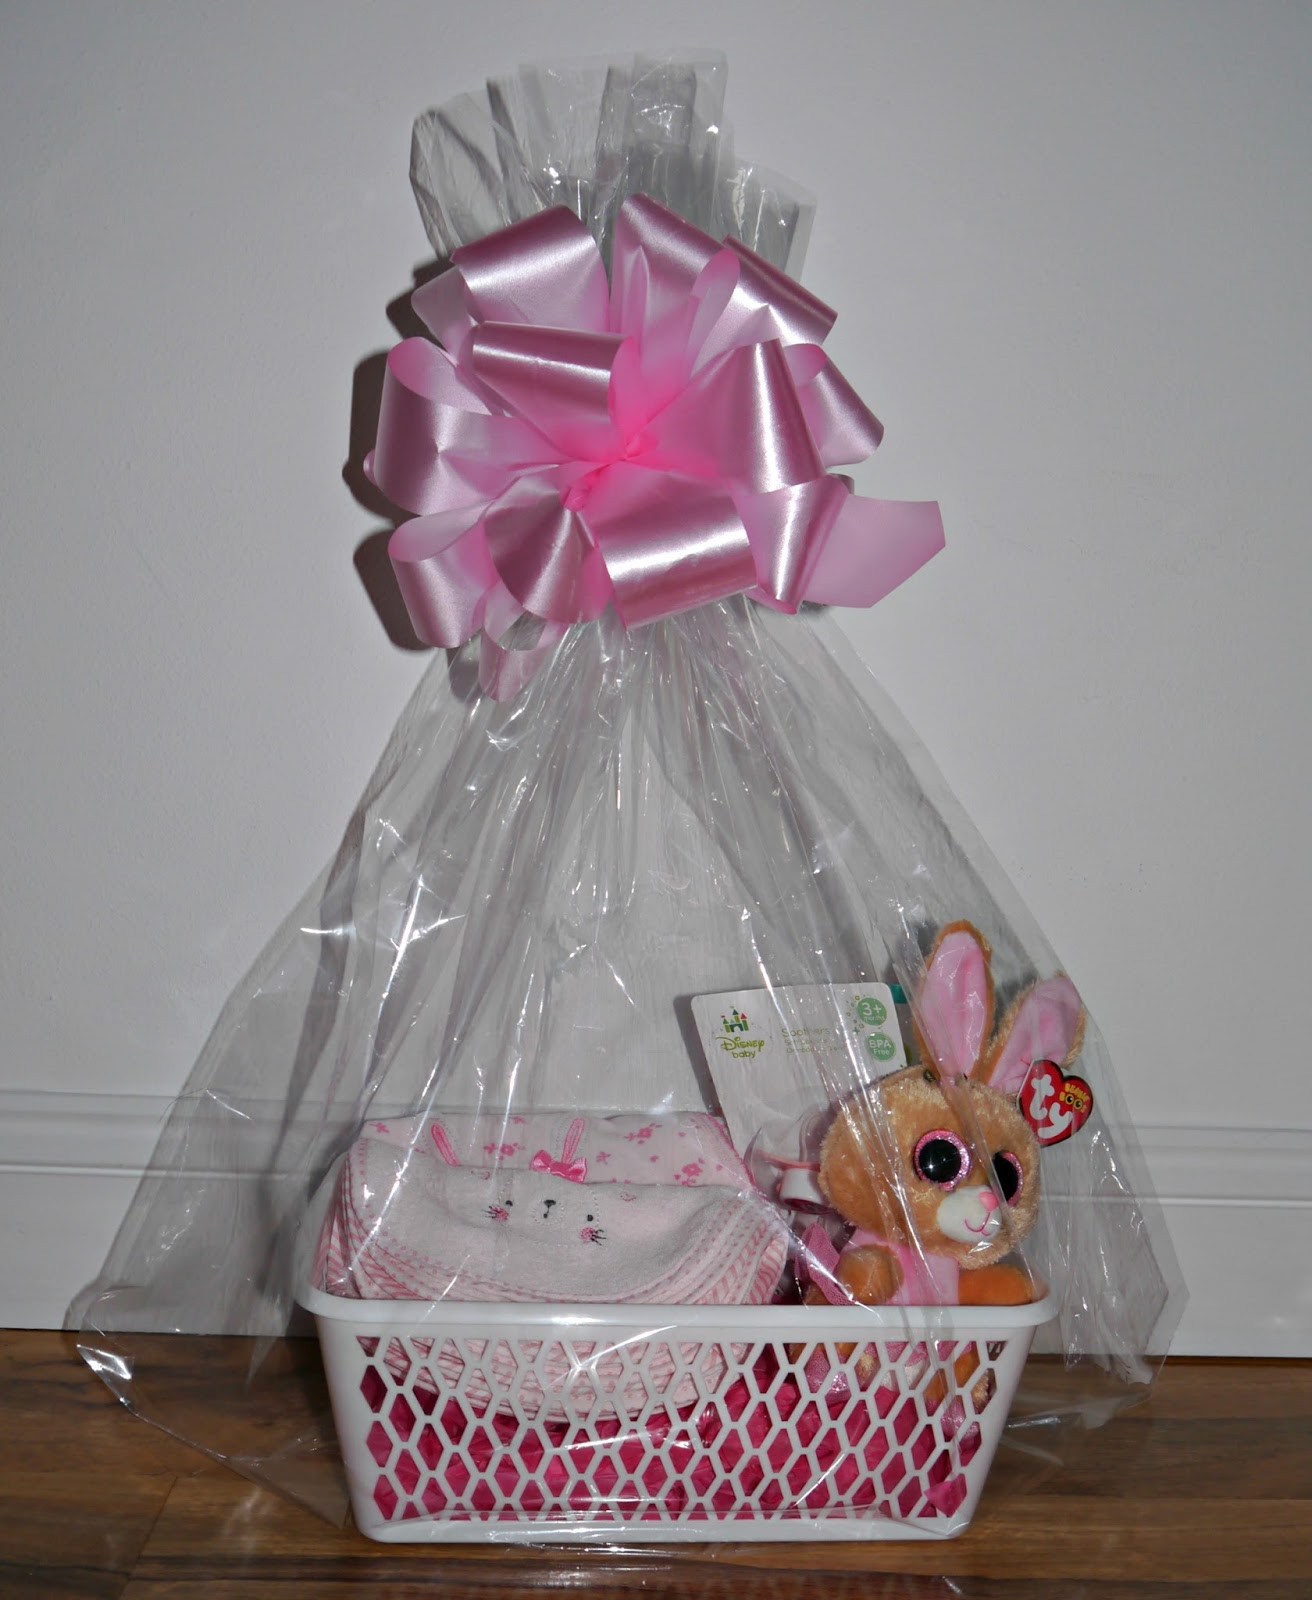 Last minute hamper ideas easter 2016 hannah marie earlier today i gave two types of easter basketshampers one being for a babys first easter and the others had a mix of things suitable for under 11 years negle Image collections